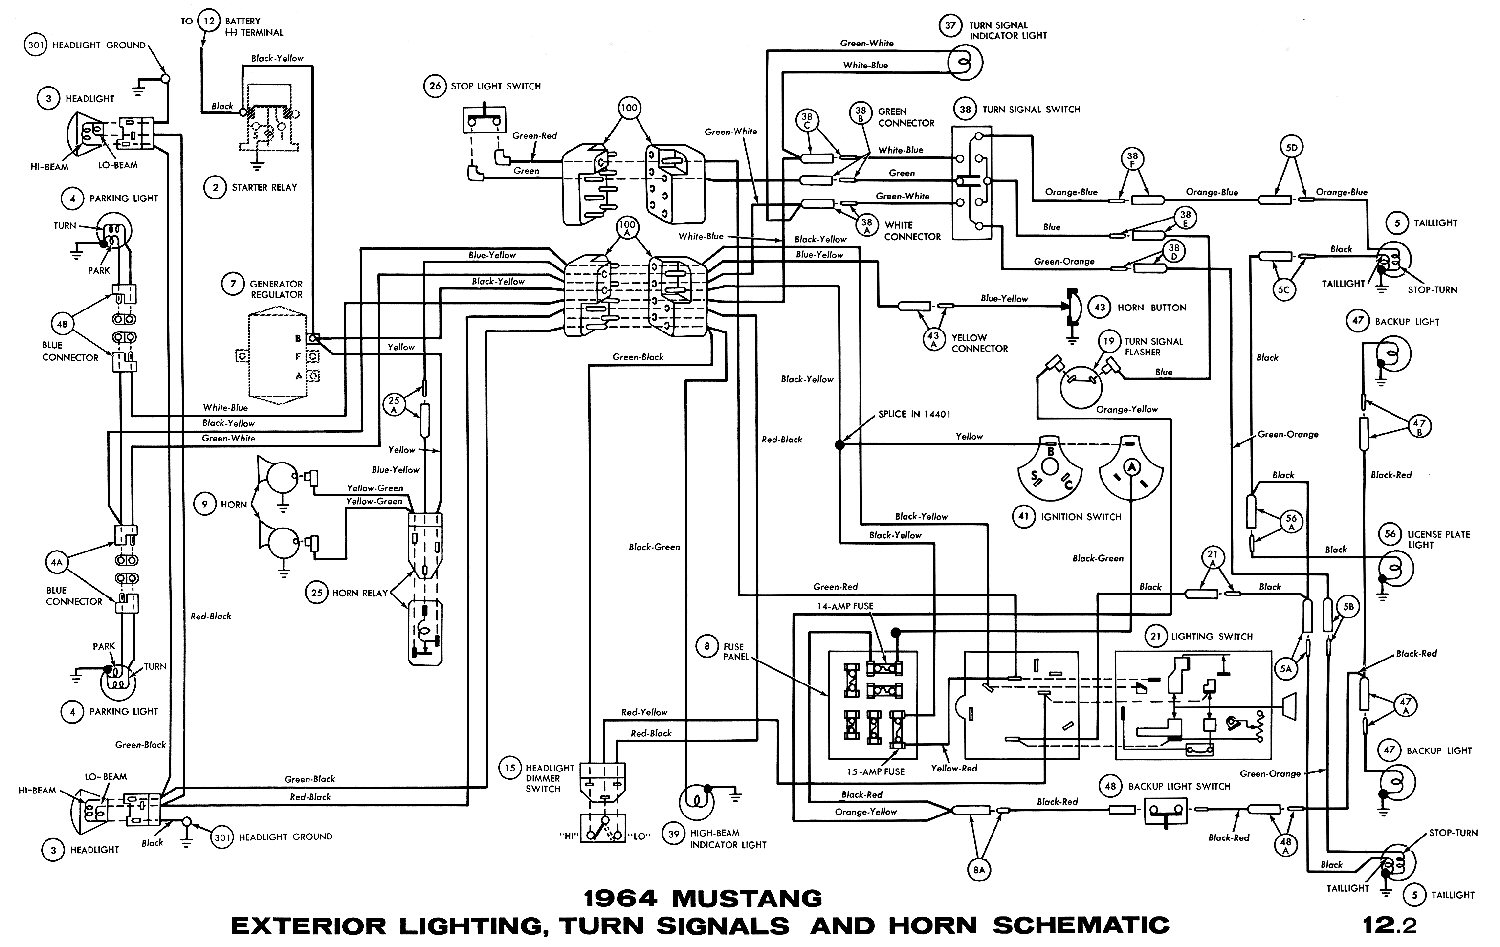 1964i 1964 mustang wiring diagrams average joe restoration 1966 mustang wiring diagrams at webbmarketing.co